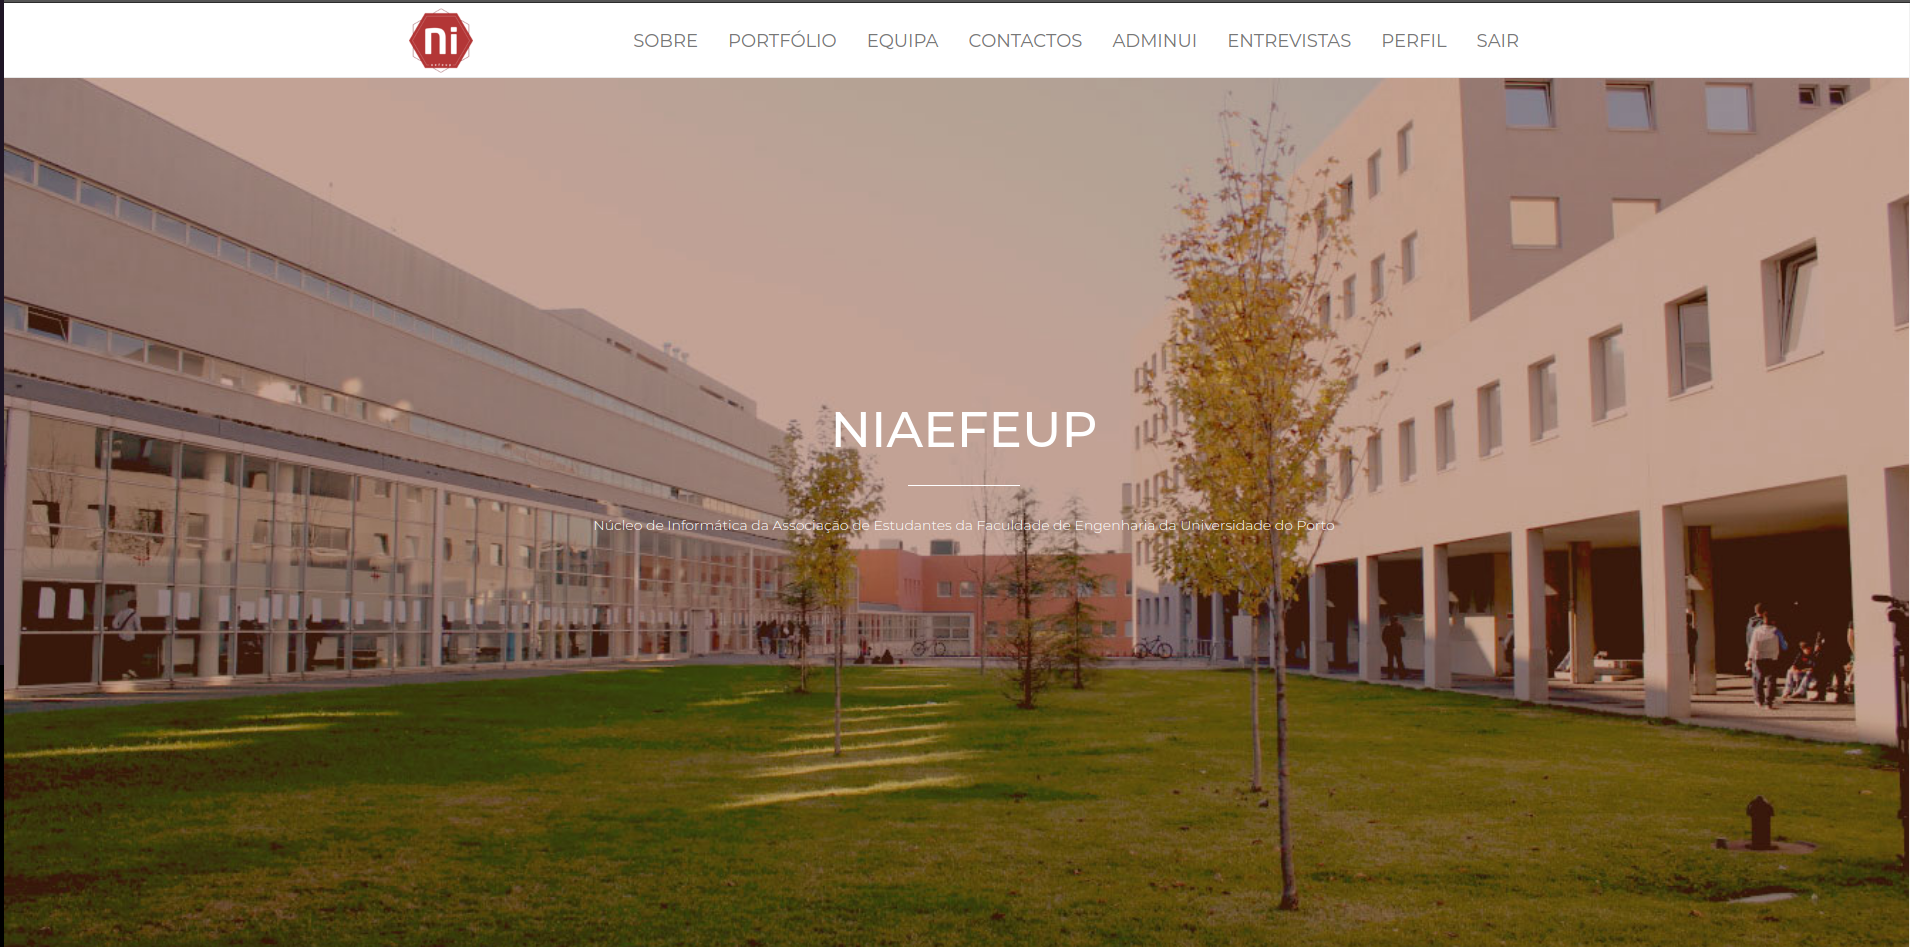 Website NIAEFEUP